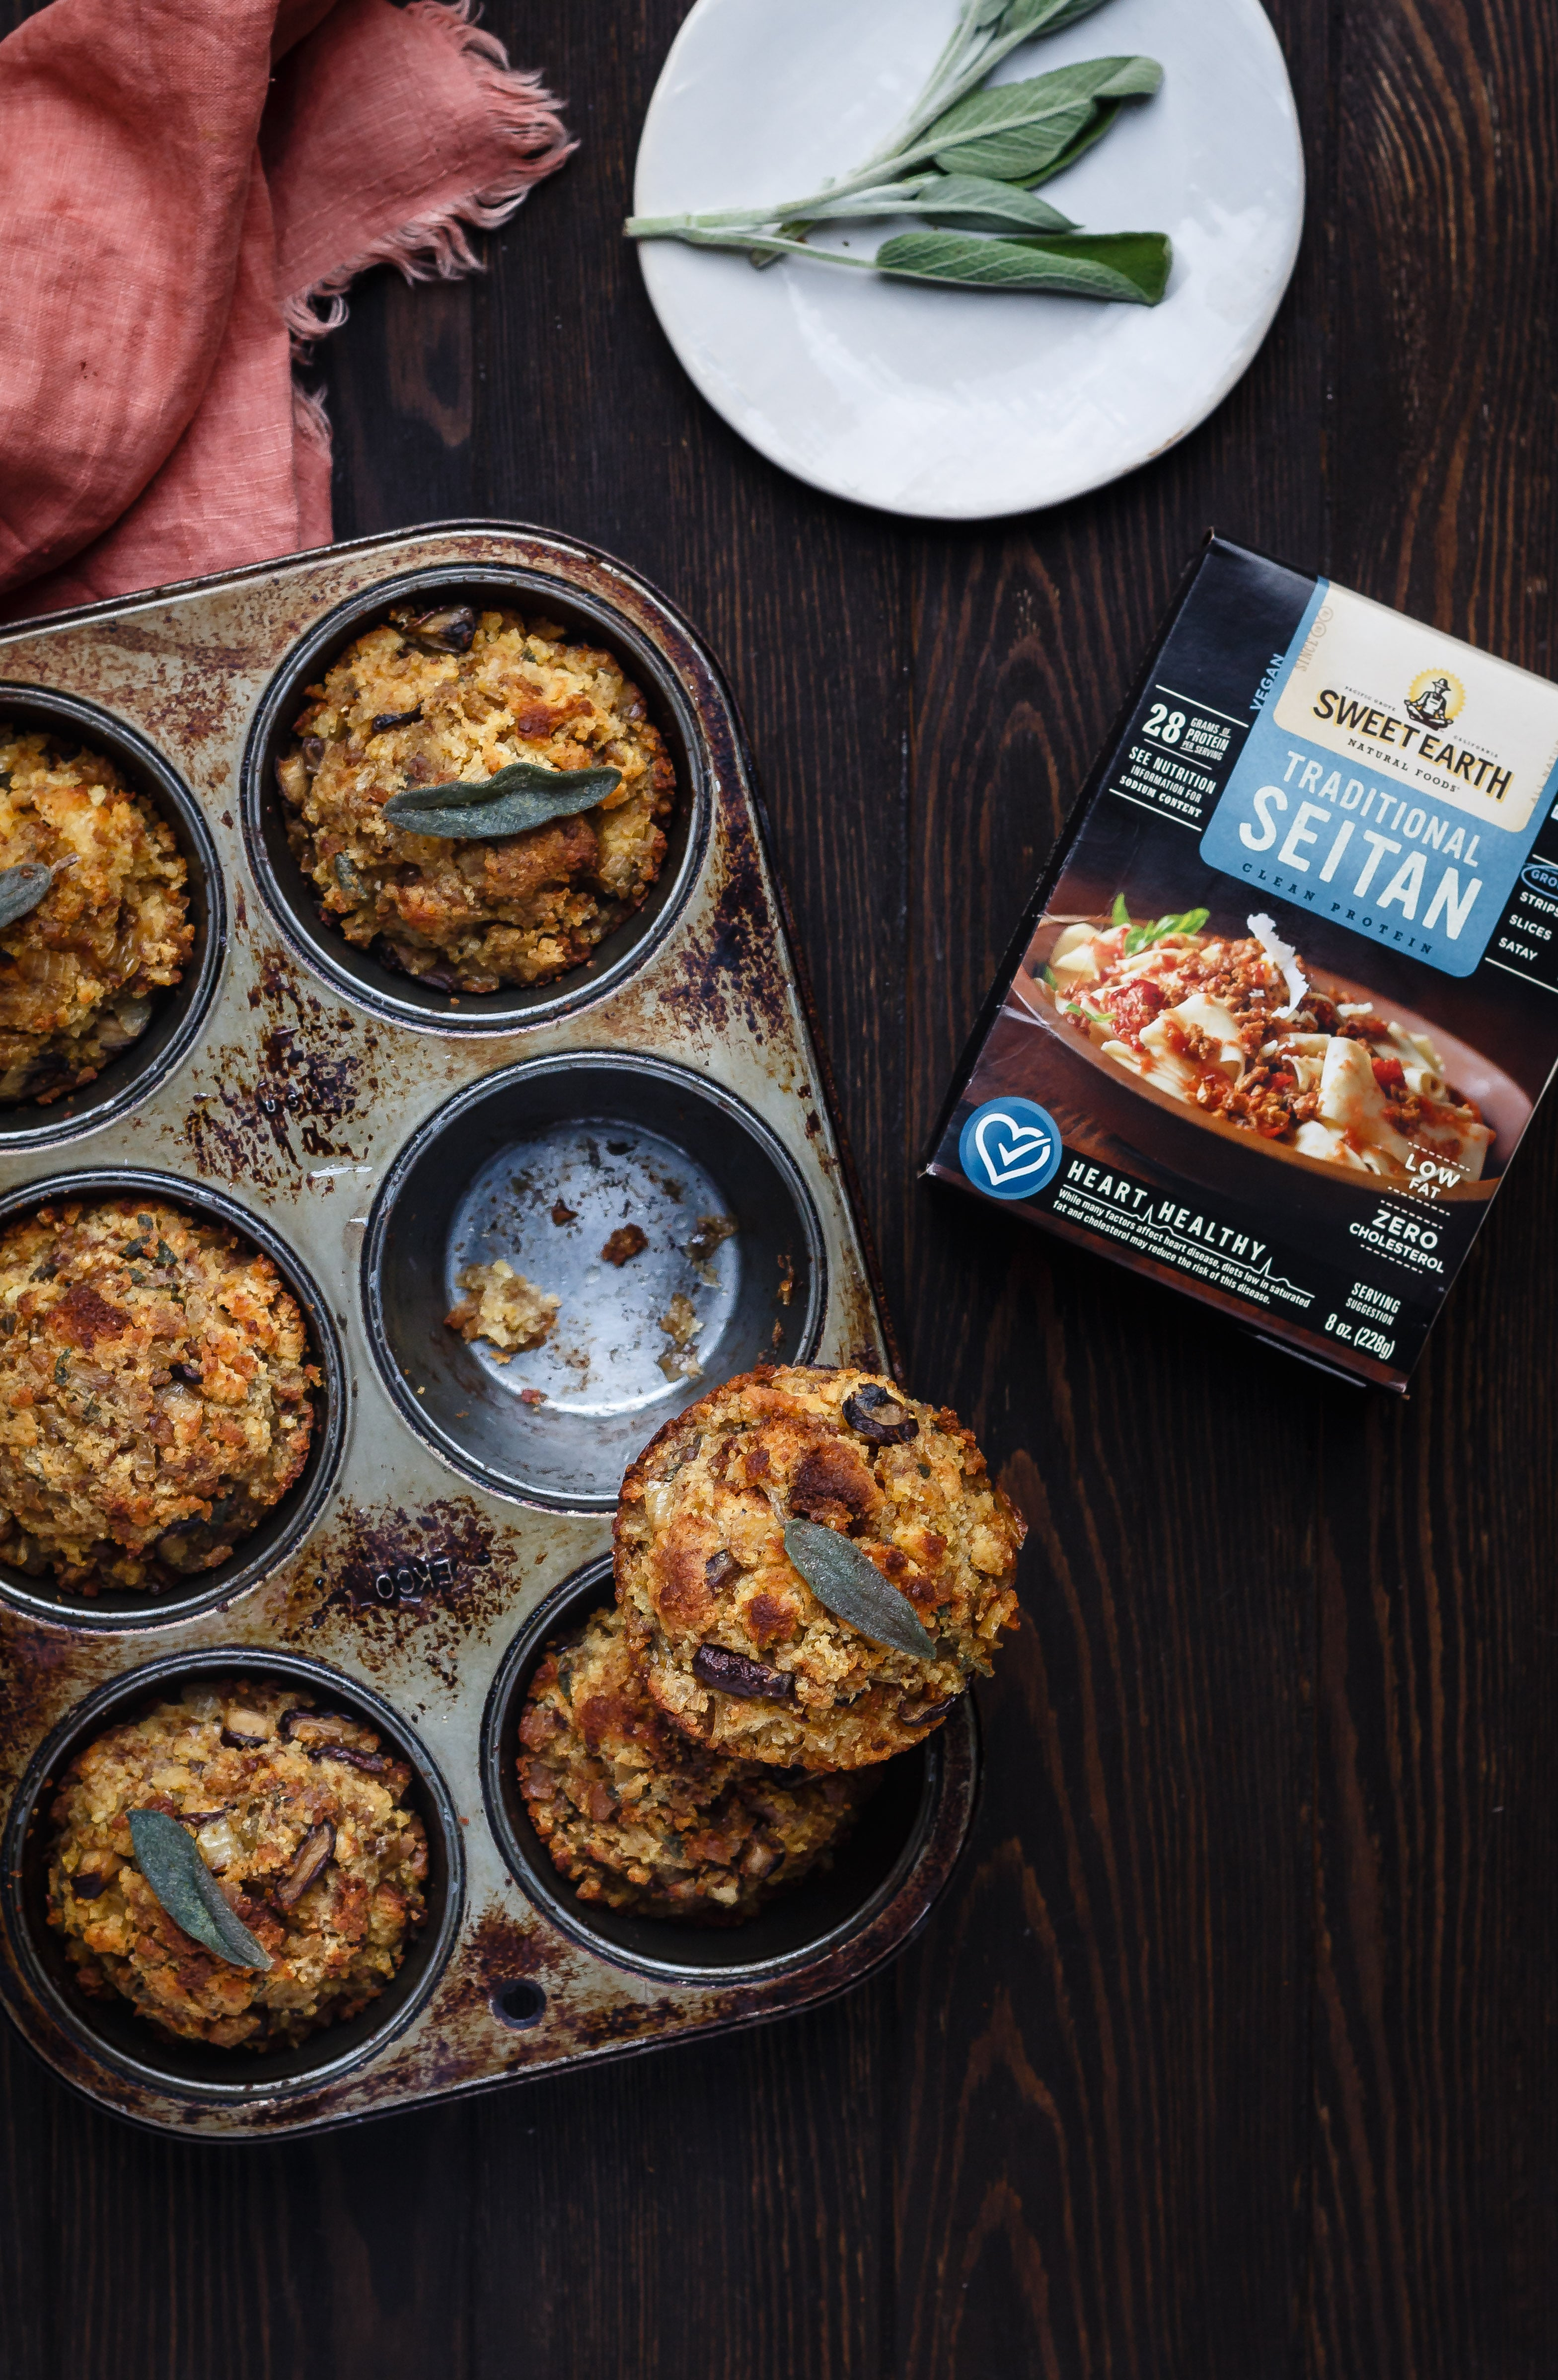 Gluten free cooking and baking that is simple and delicious, with as few crazy ingredients as possible.